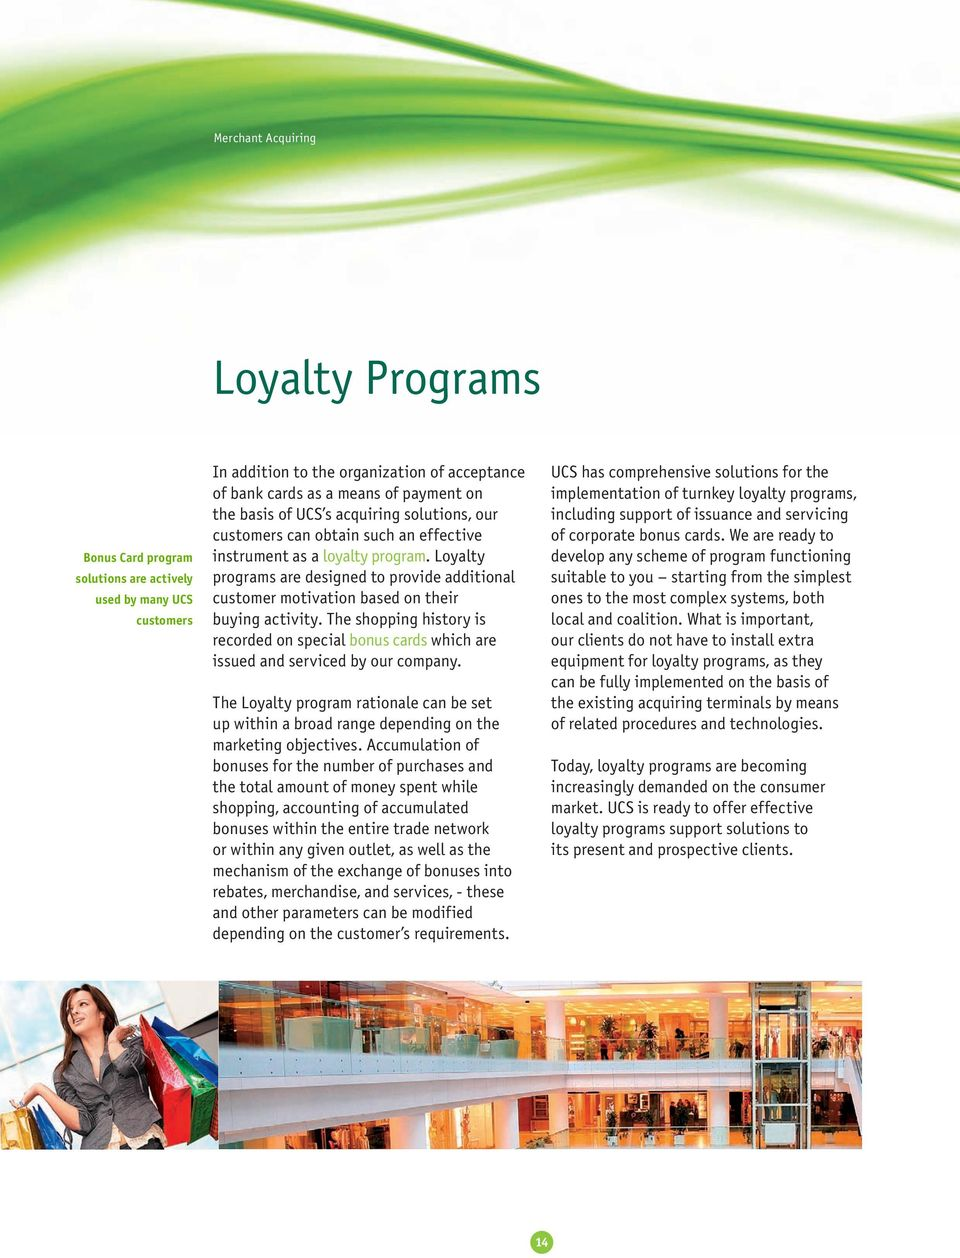 Loyalty programs are designed to provide additional customer motivation based on their buying activity.